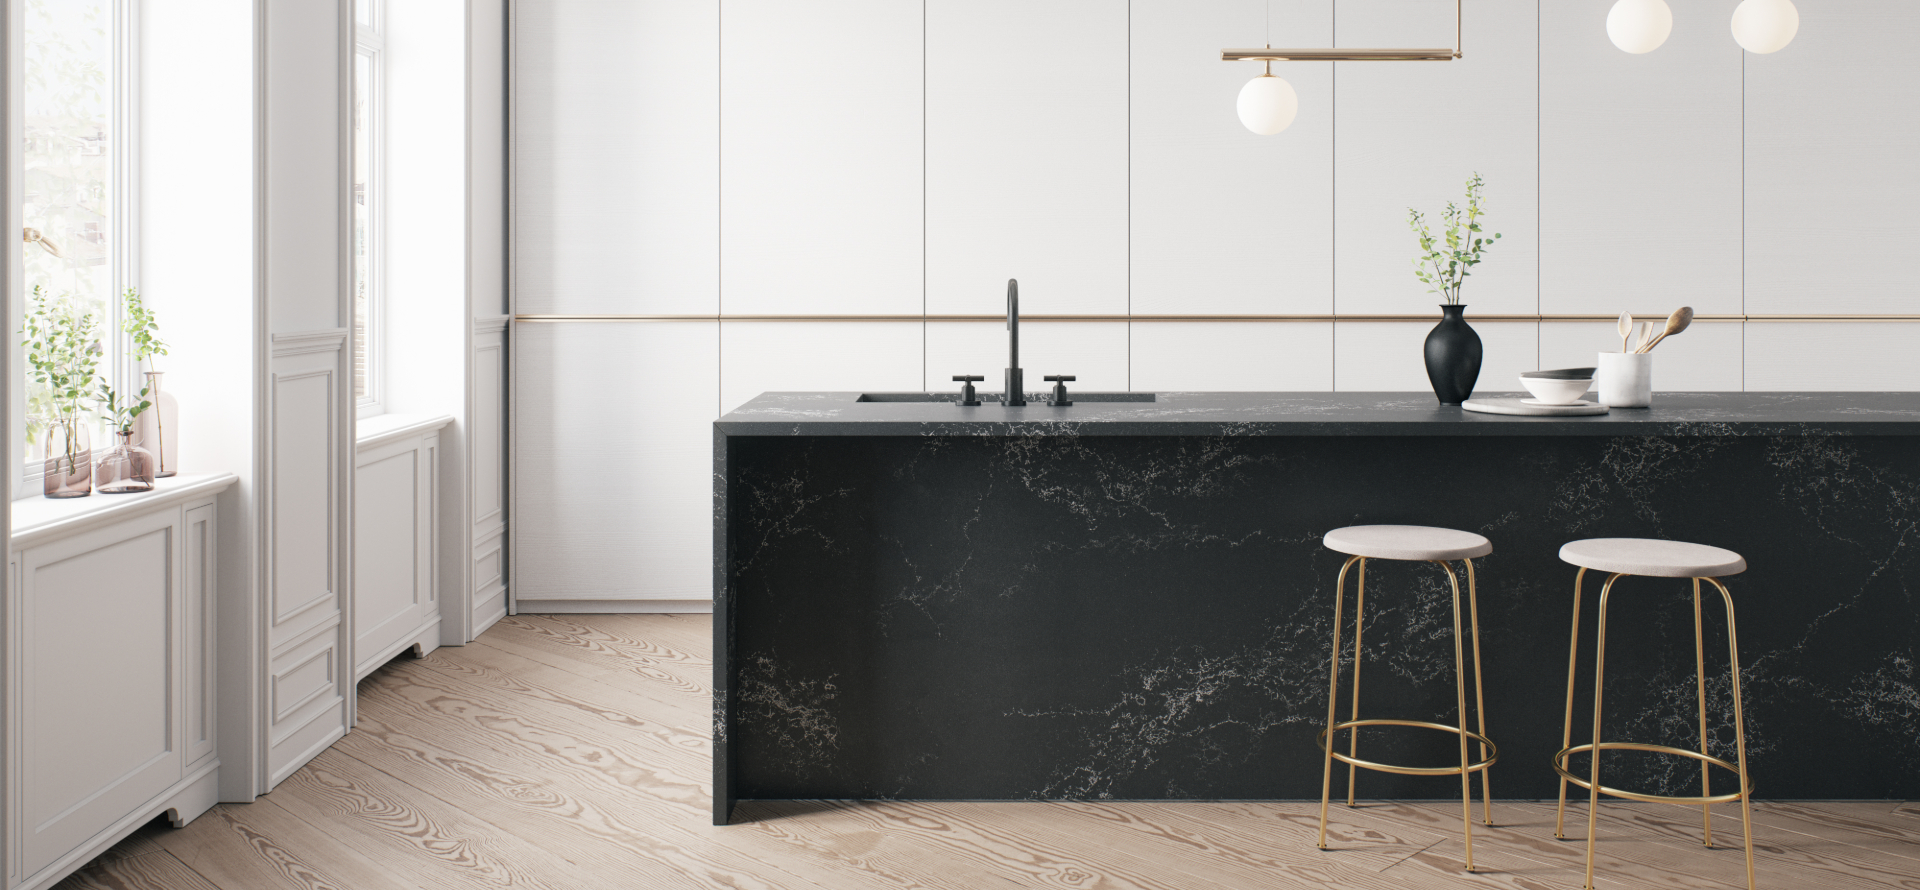 caesarstone empira black